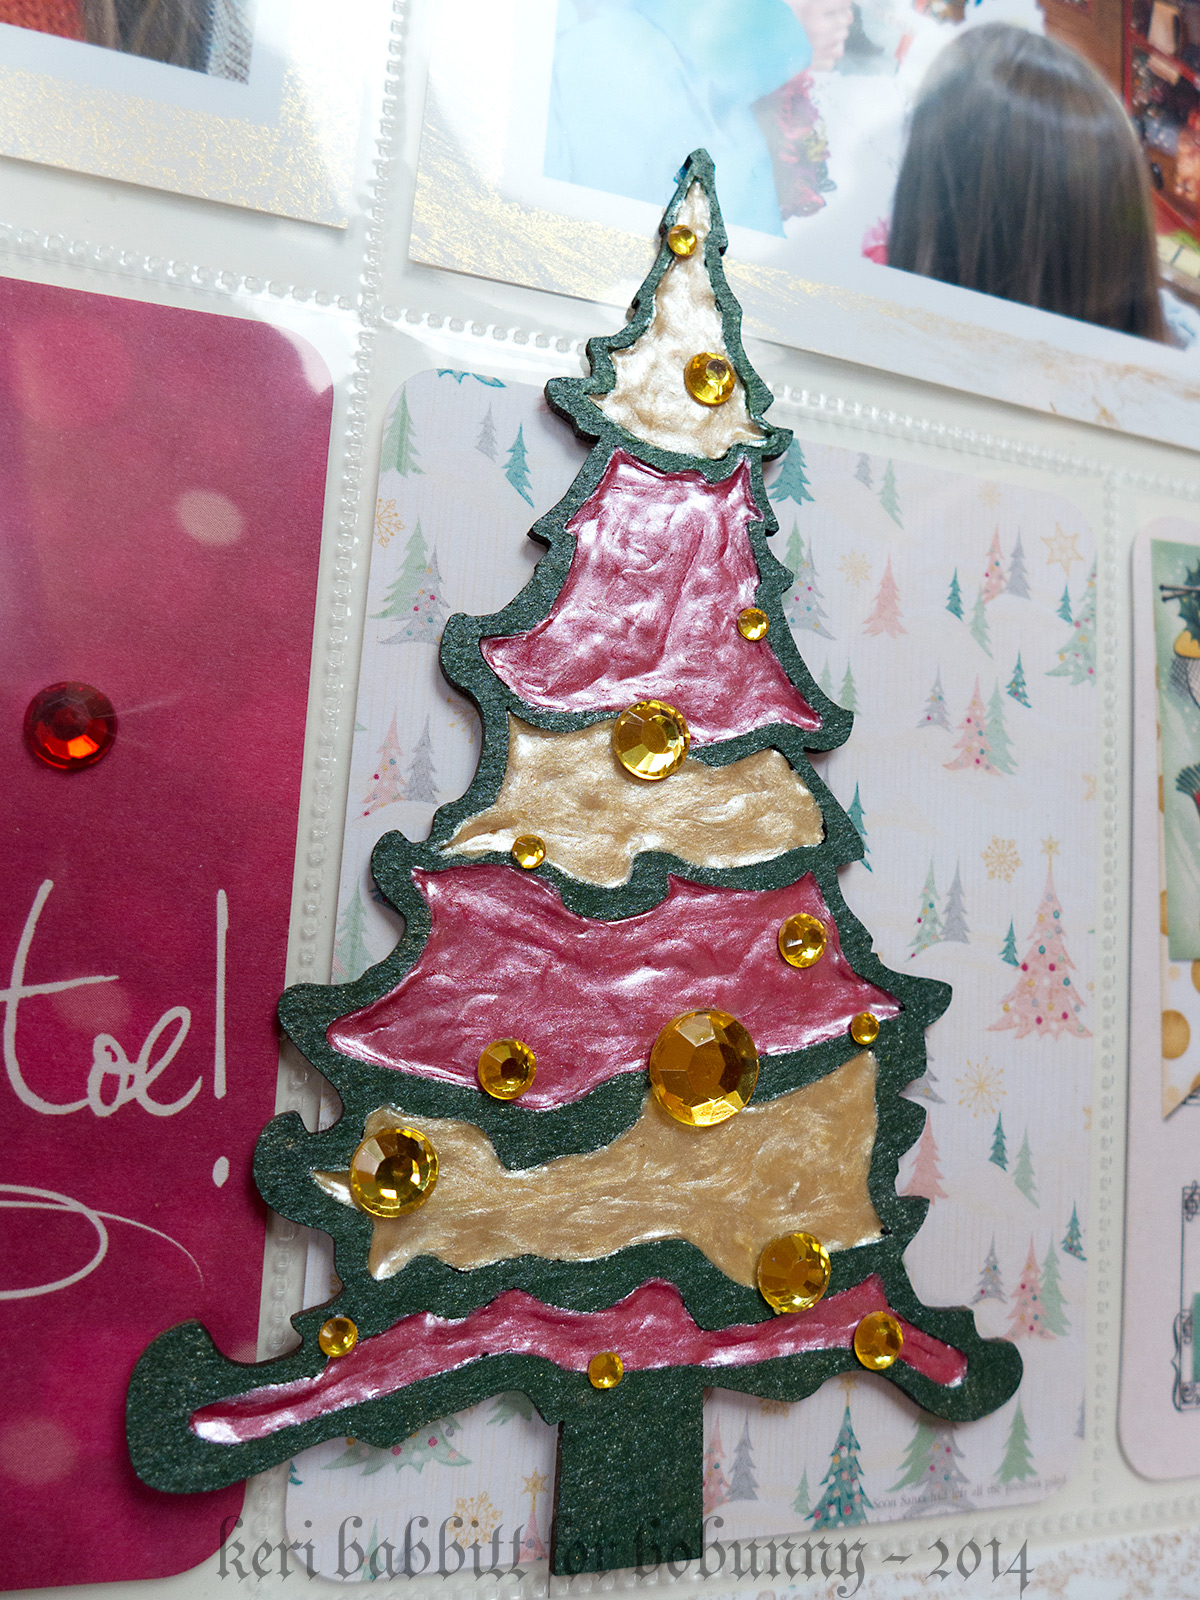 Christmas Greetings Misc Me by Keri Babbitt using Leaky Shed